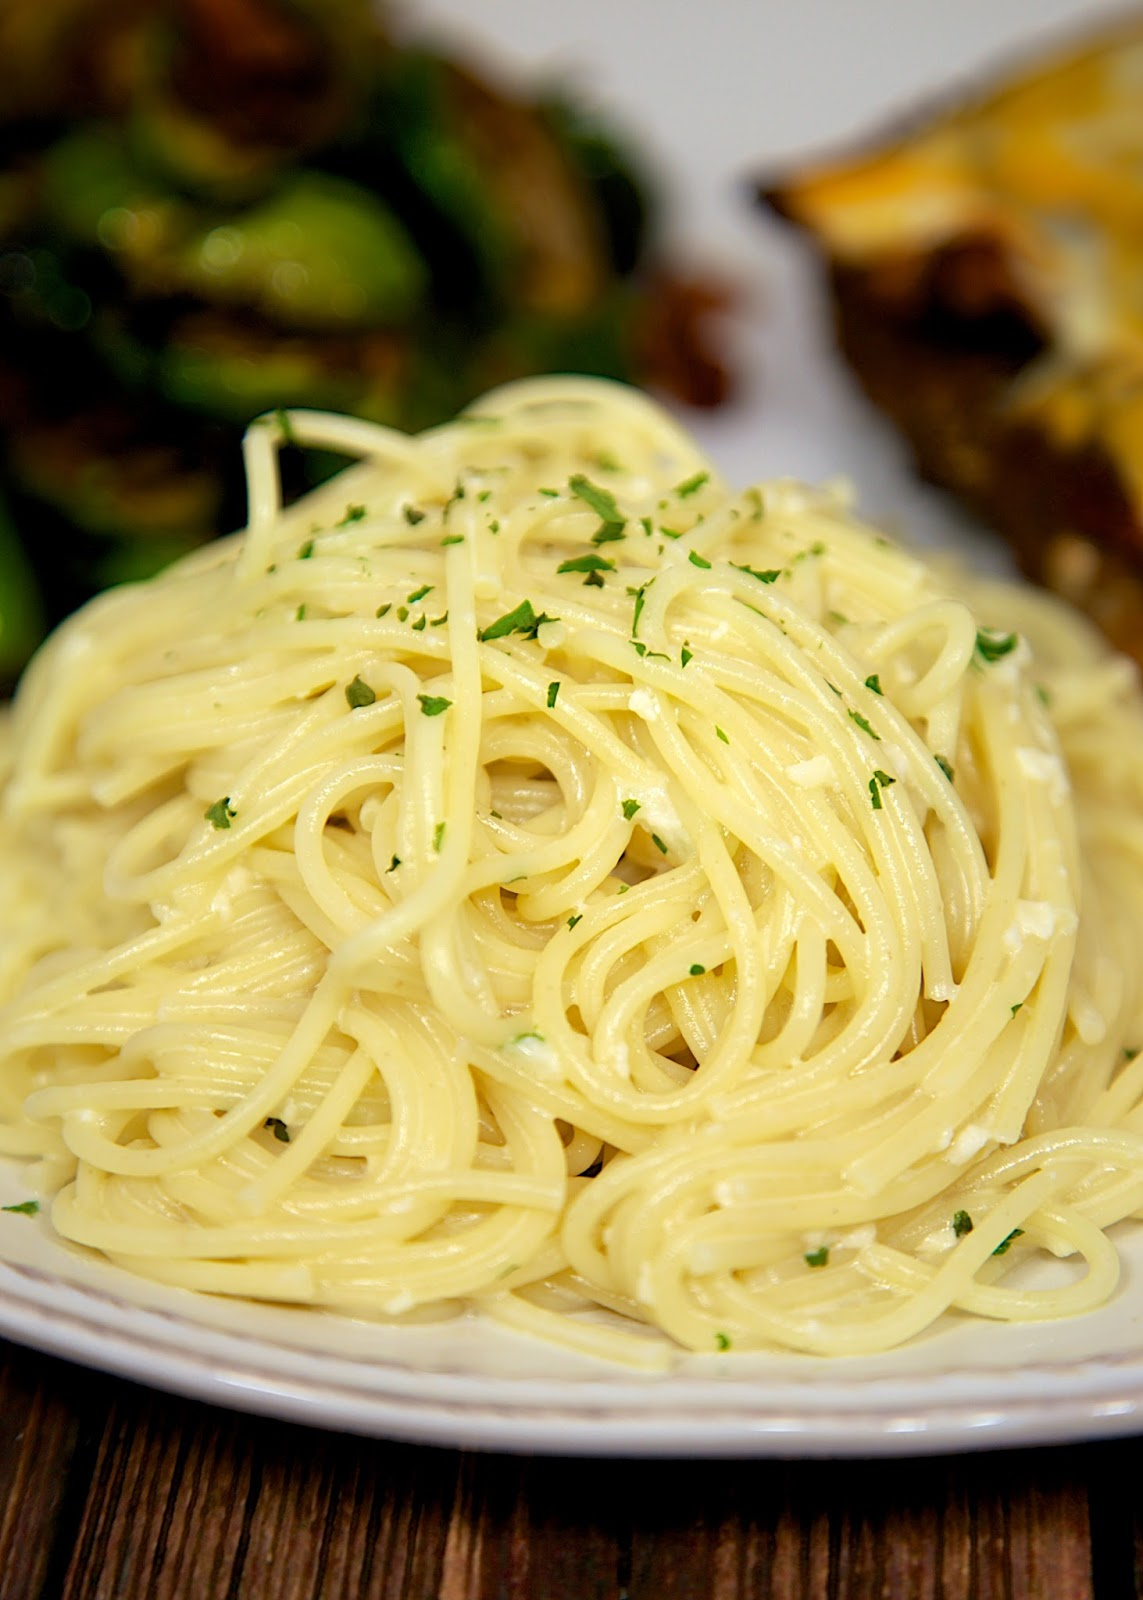 Lemon Vermicelli - quick side dish with only 5 ingredients! Pasta, heavy cream, butter, lemon juice and Parmesan - so delicious! I could make a meal out of this pasta!